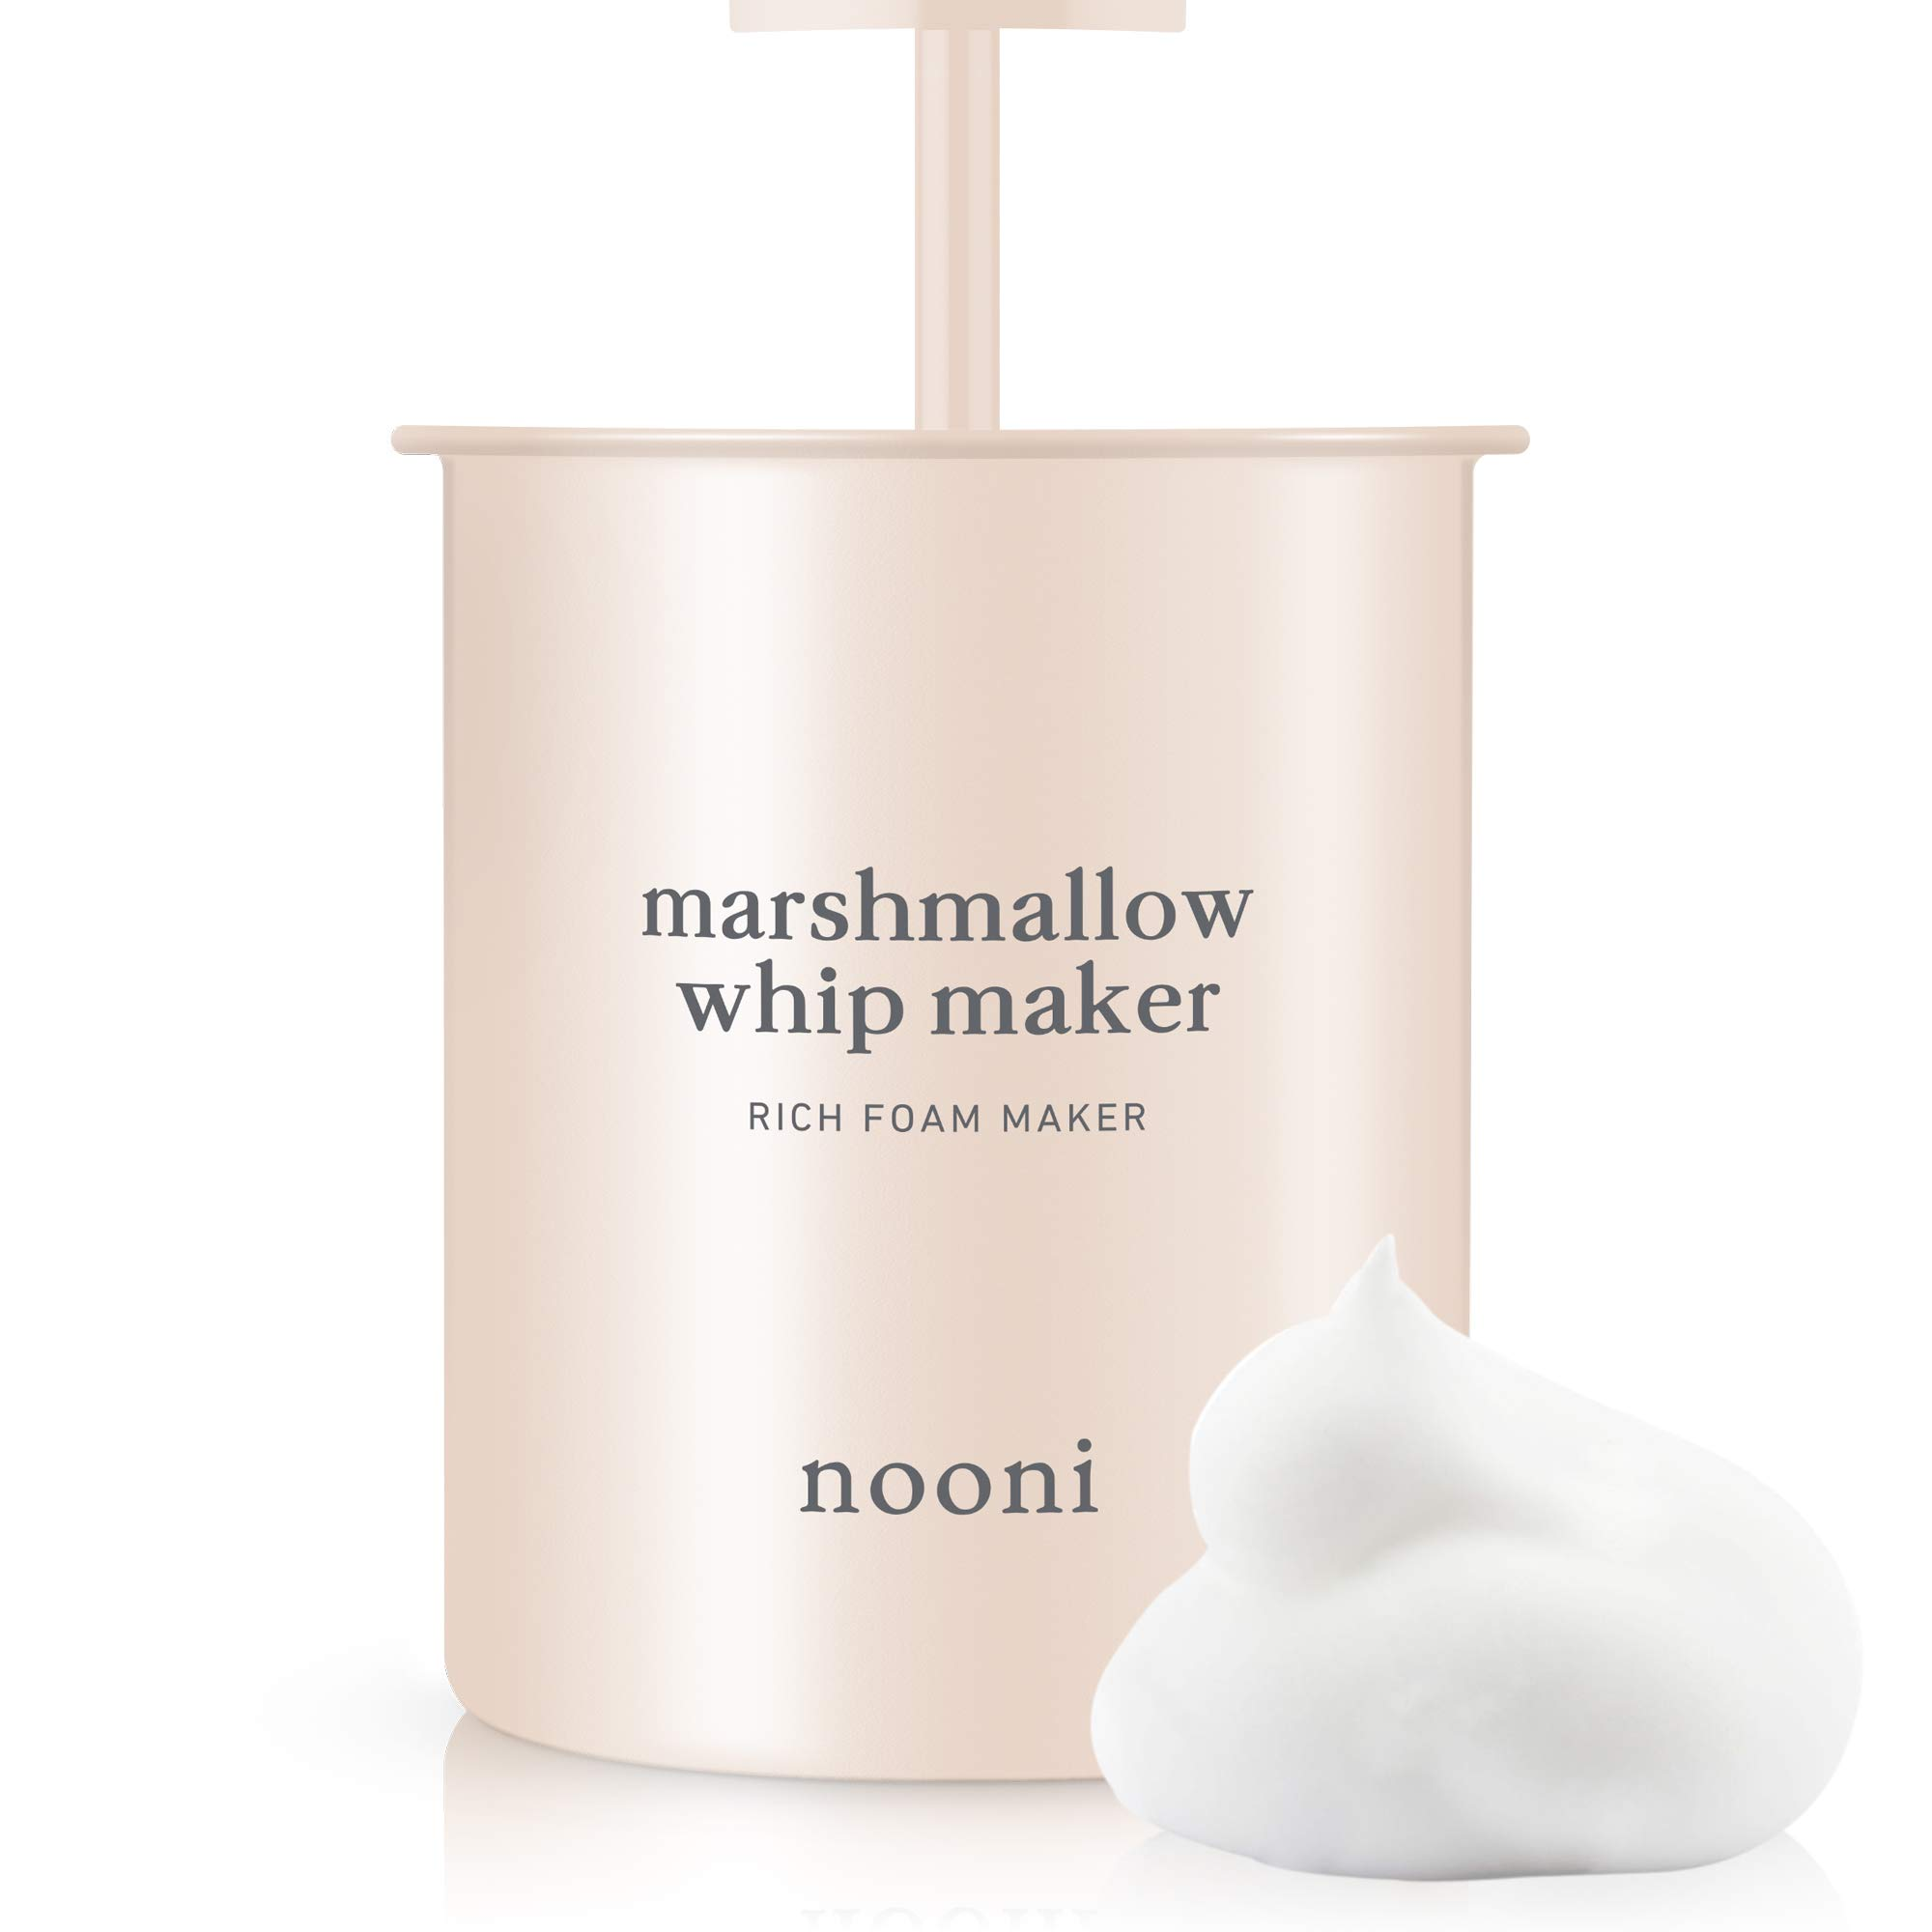 Nooni - Marshmallow Whip Maker